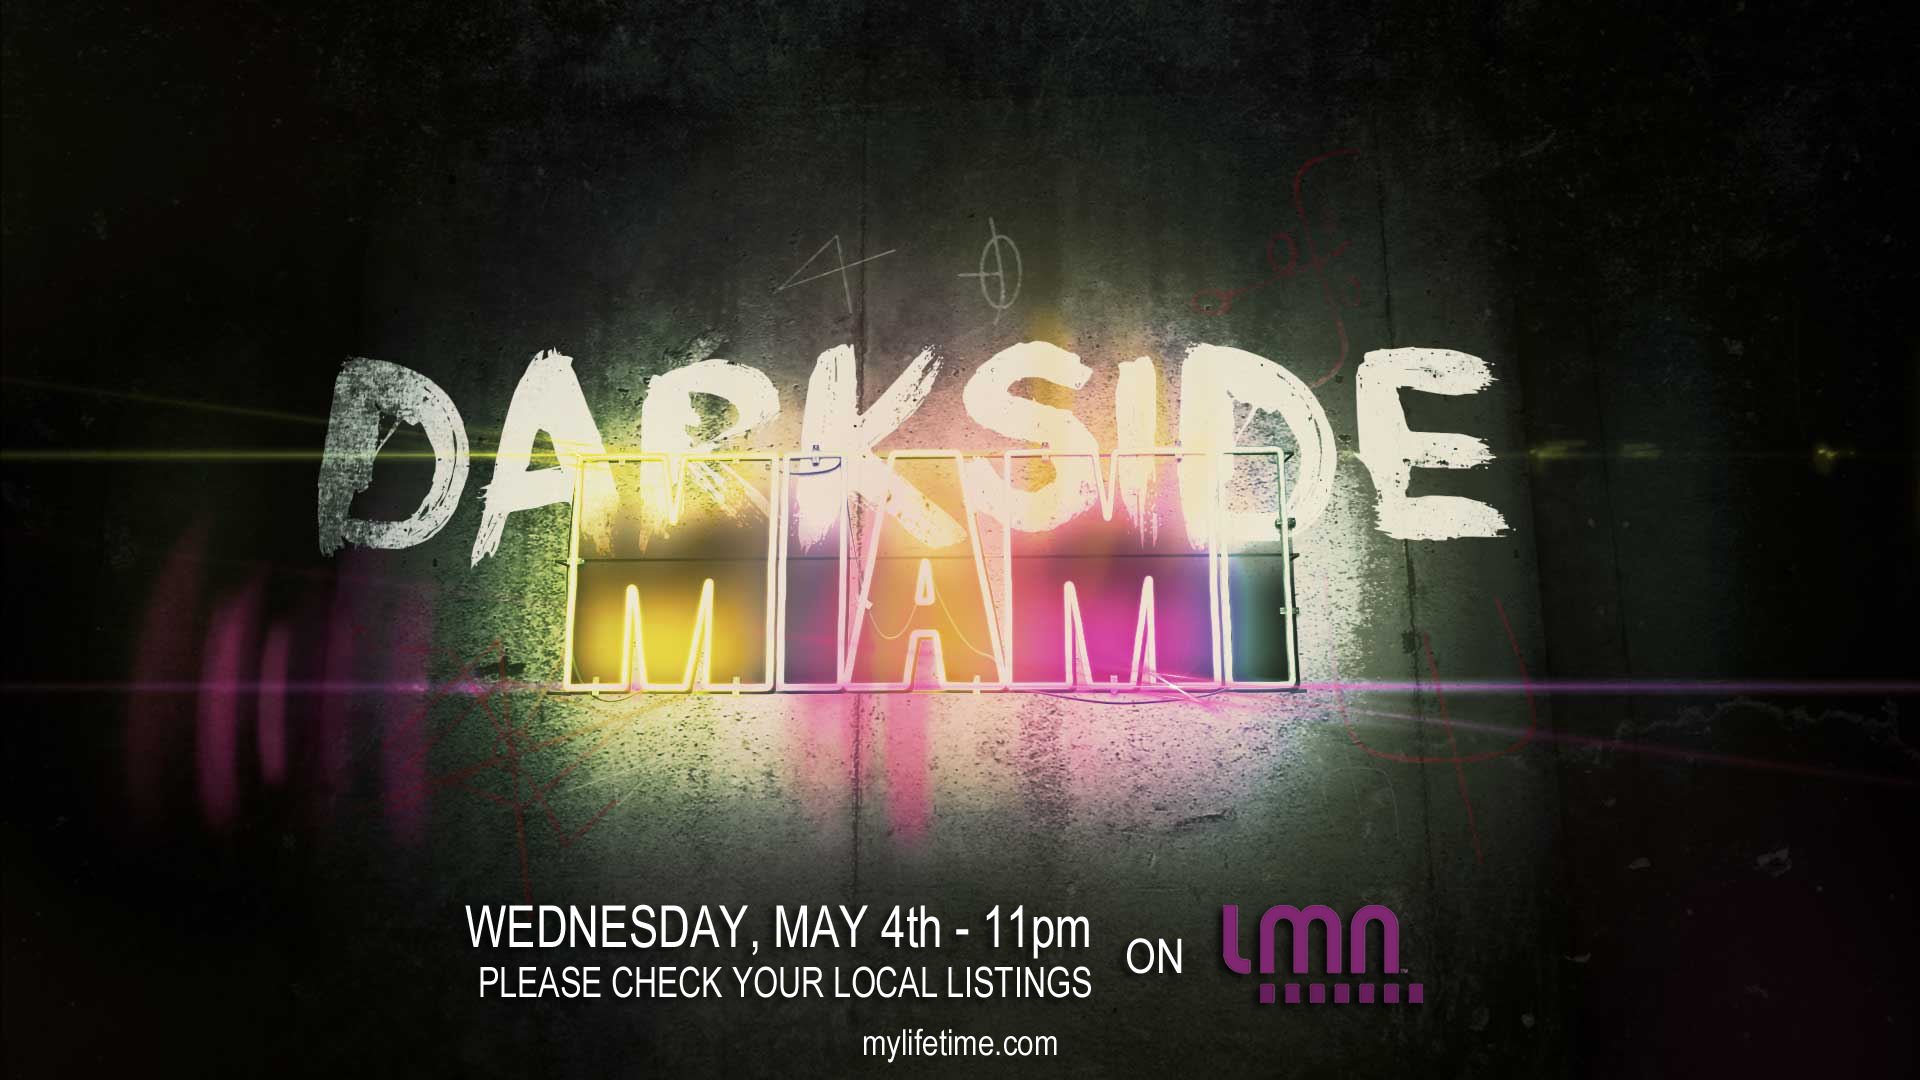 Darkside Miami